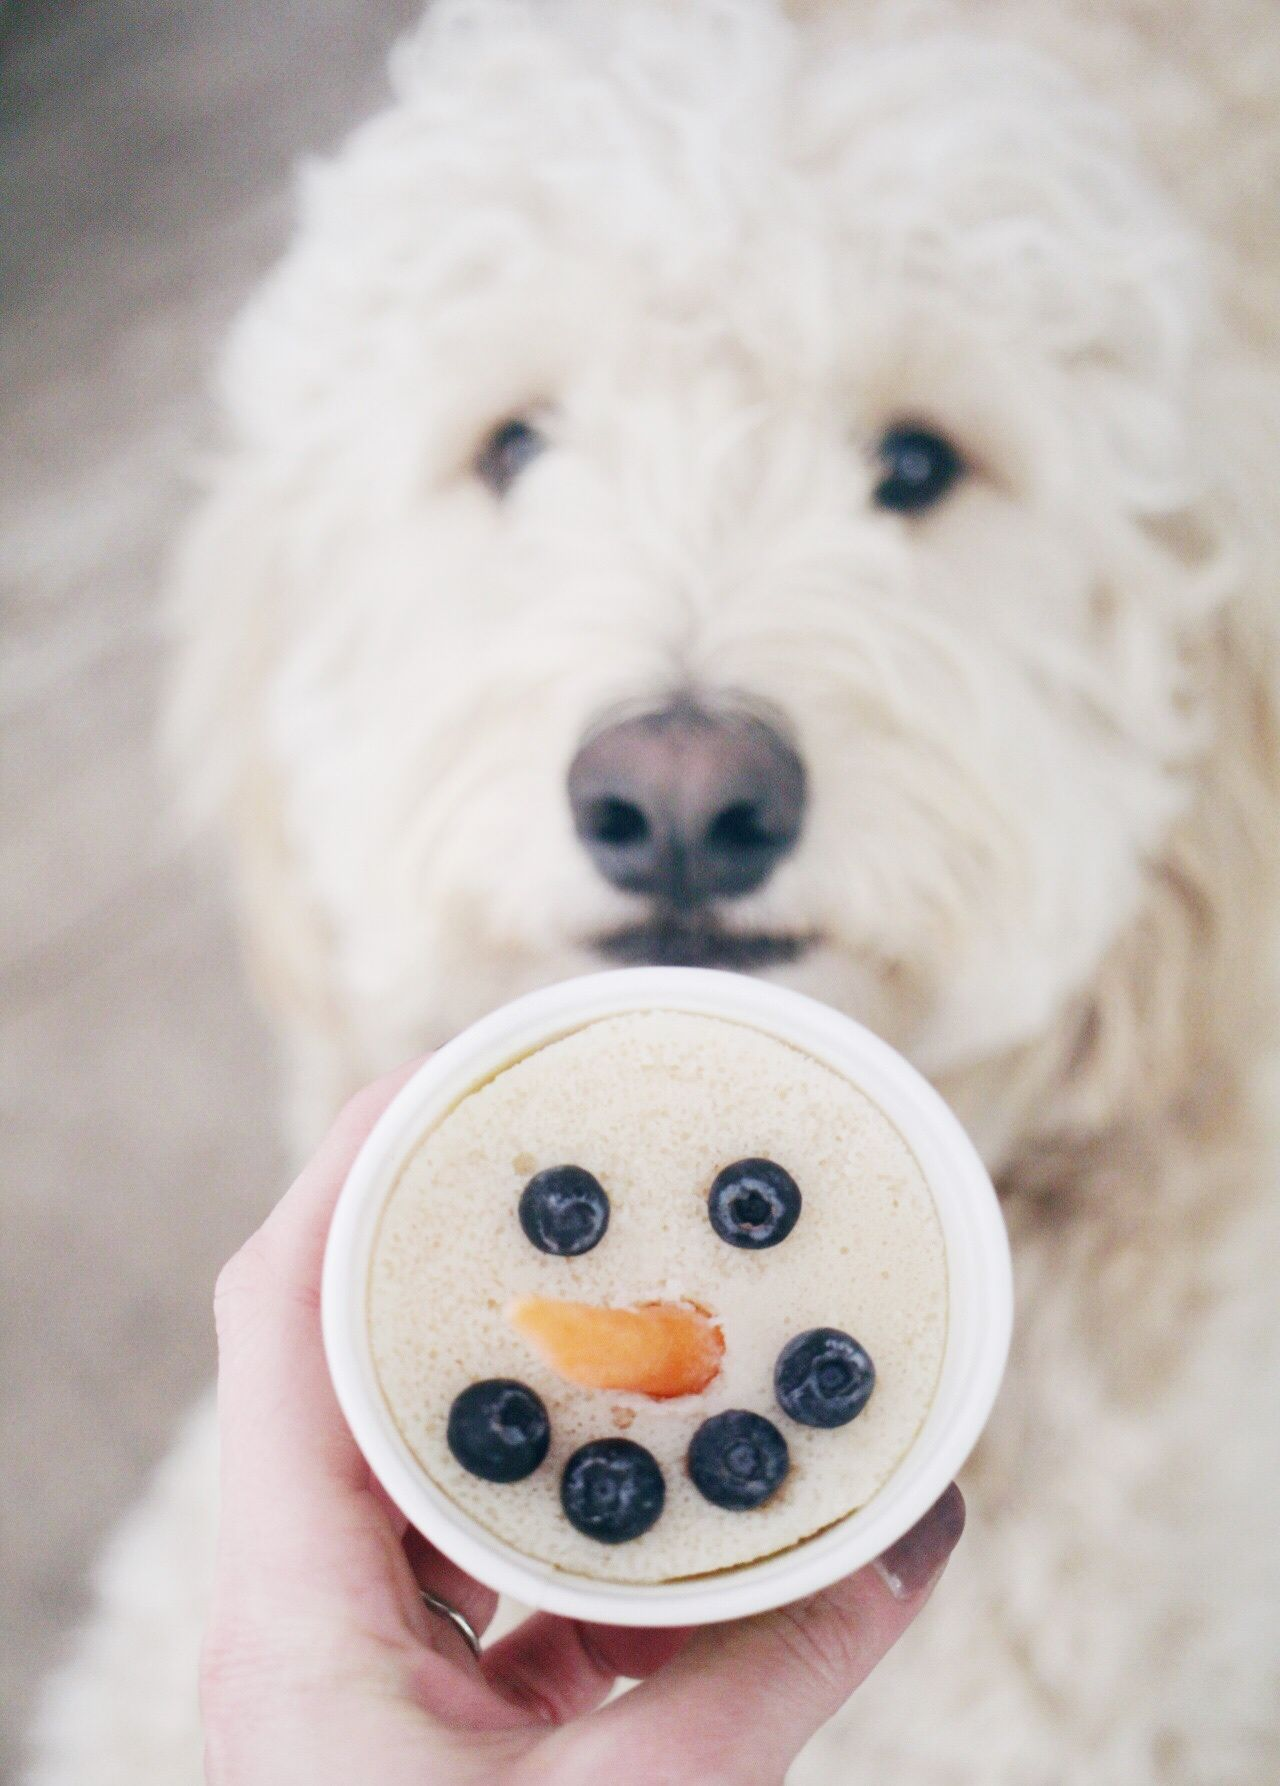 Tag us with your Yogurt Snowman via